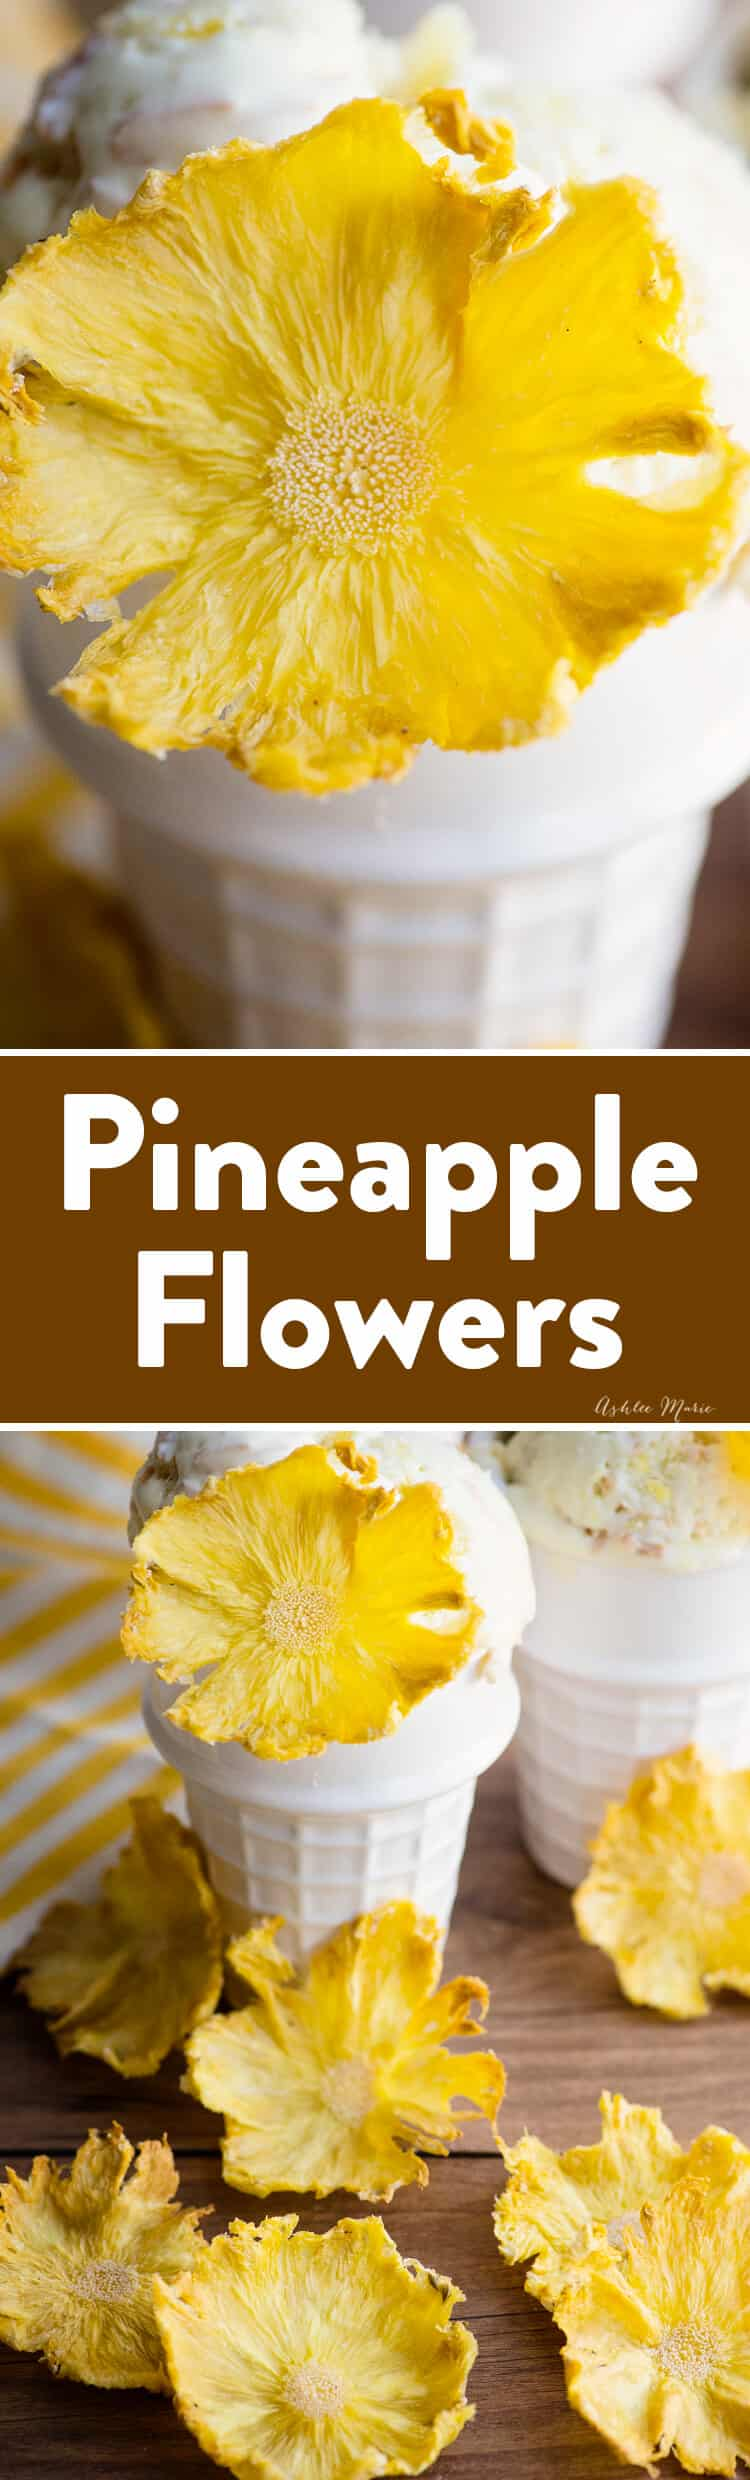 Easy to make dried pineapple flowers